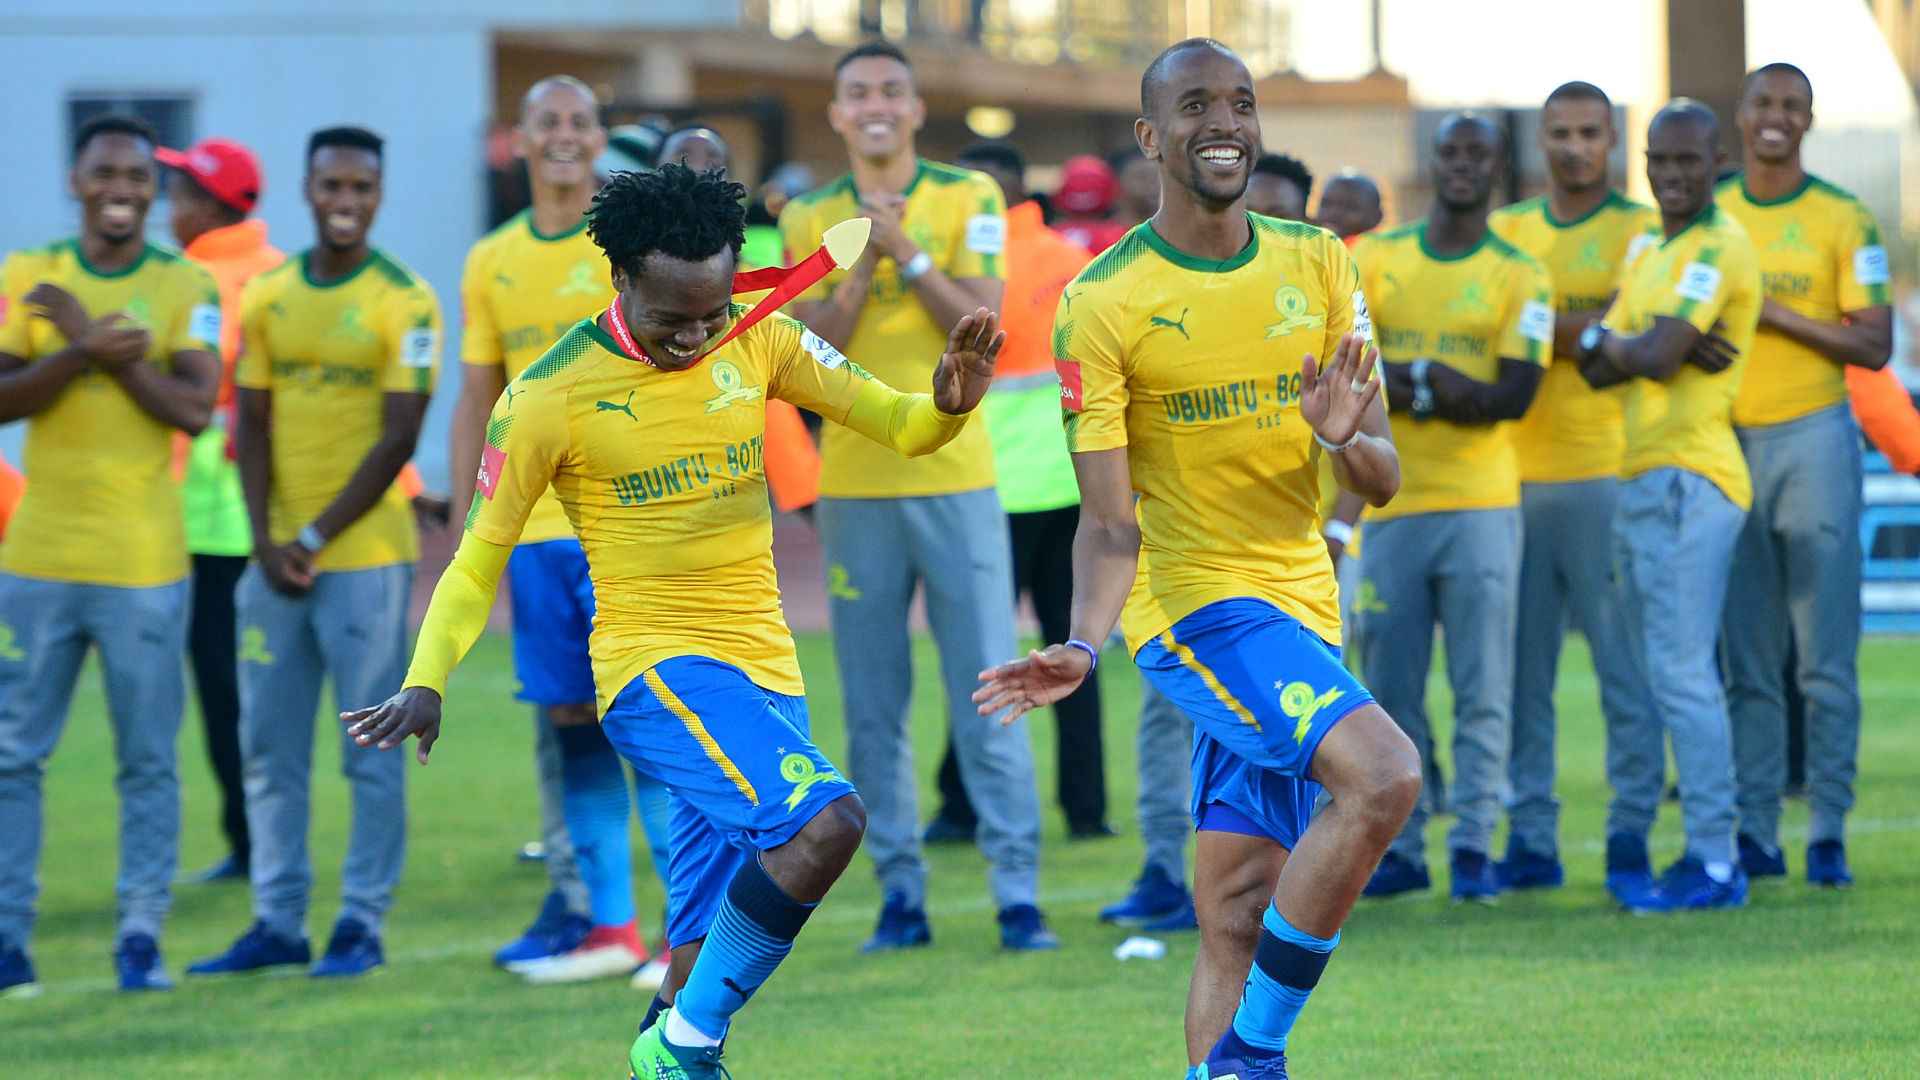 Percy Tau & Tiyani Mabunda Mamelodi Sundowns May 2018